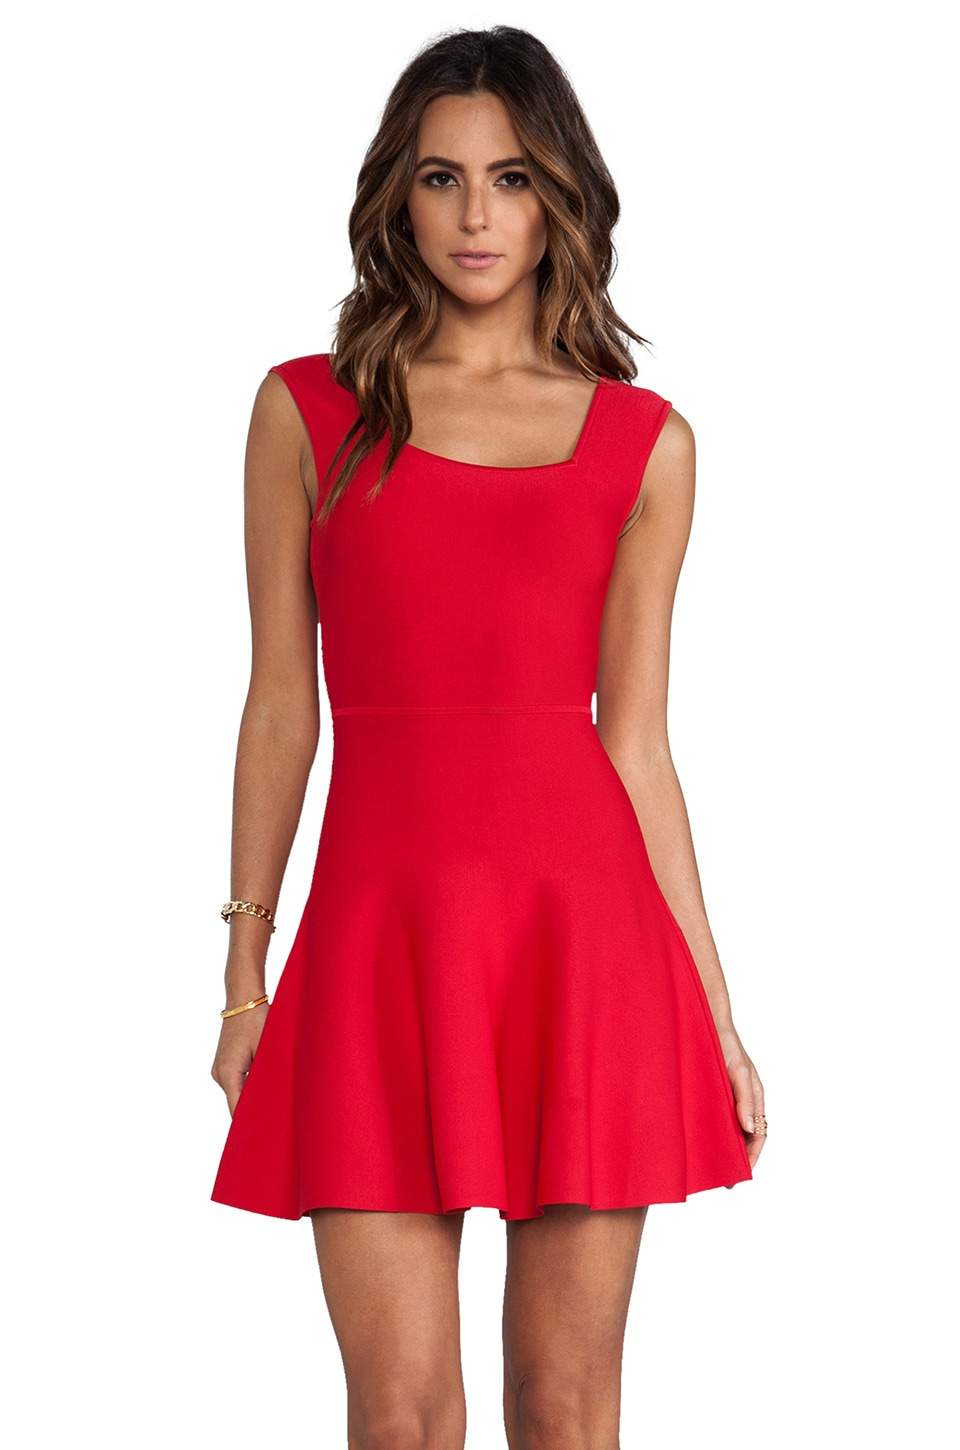 BCBGMAXAZRIA Back Cut-Out Dress in Poppy